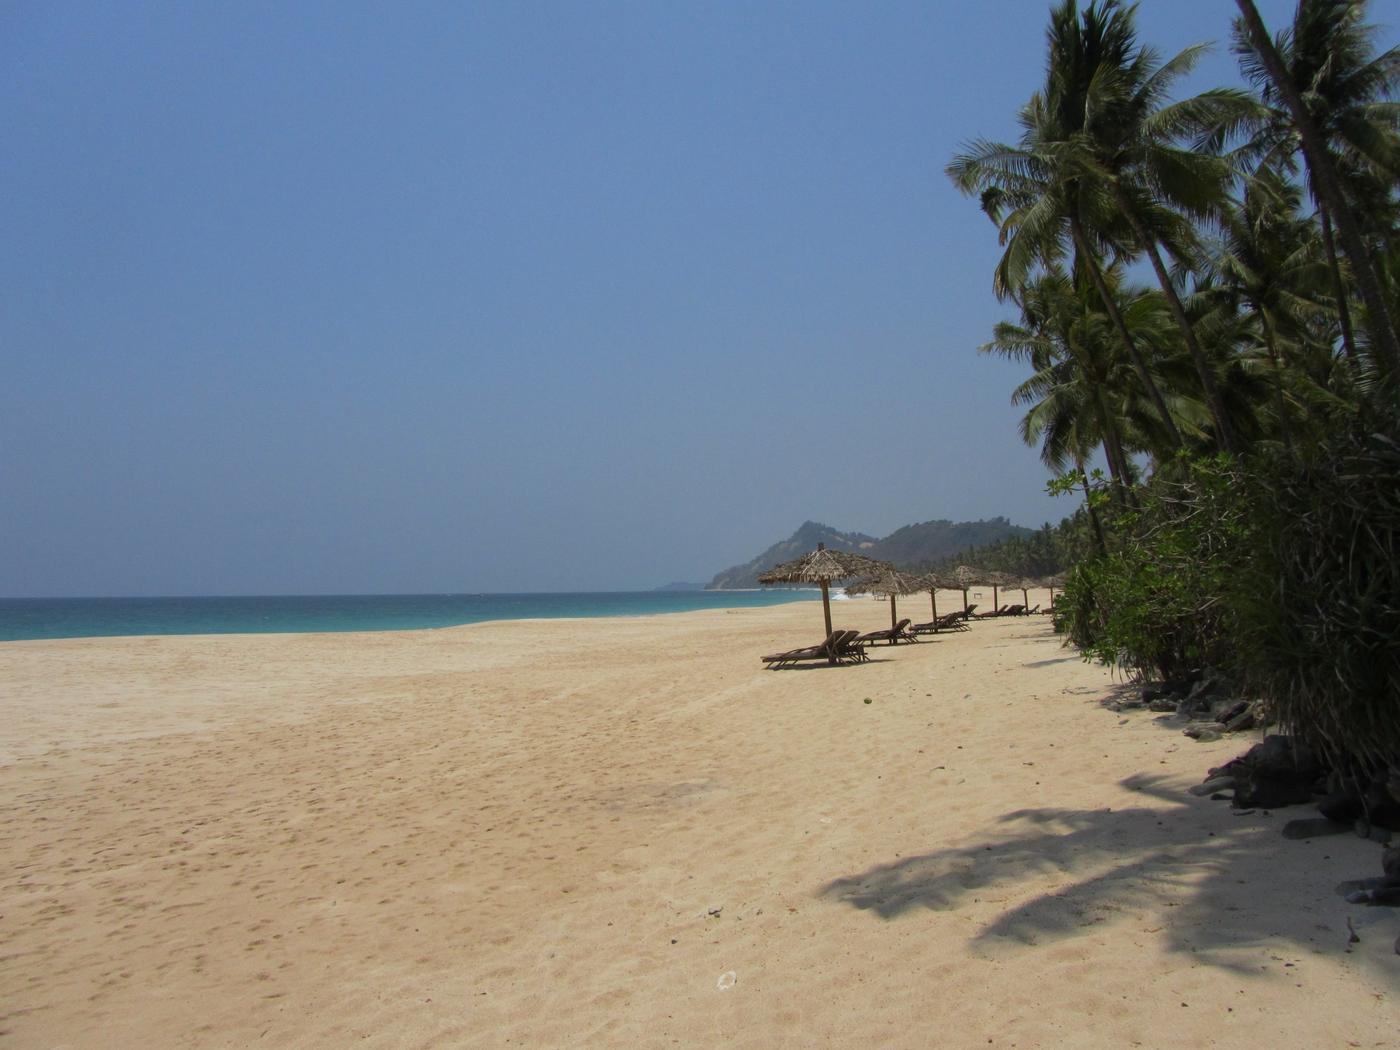 The beach, Amara Ocean Resort